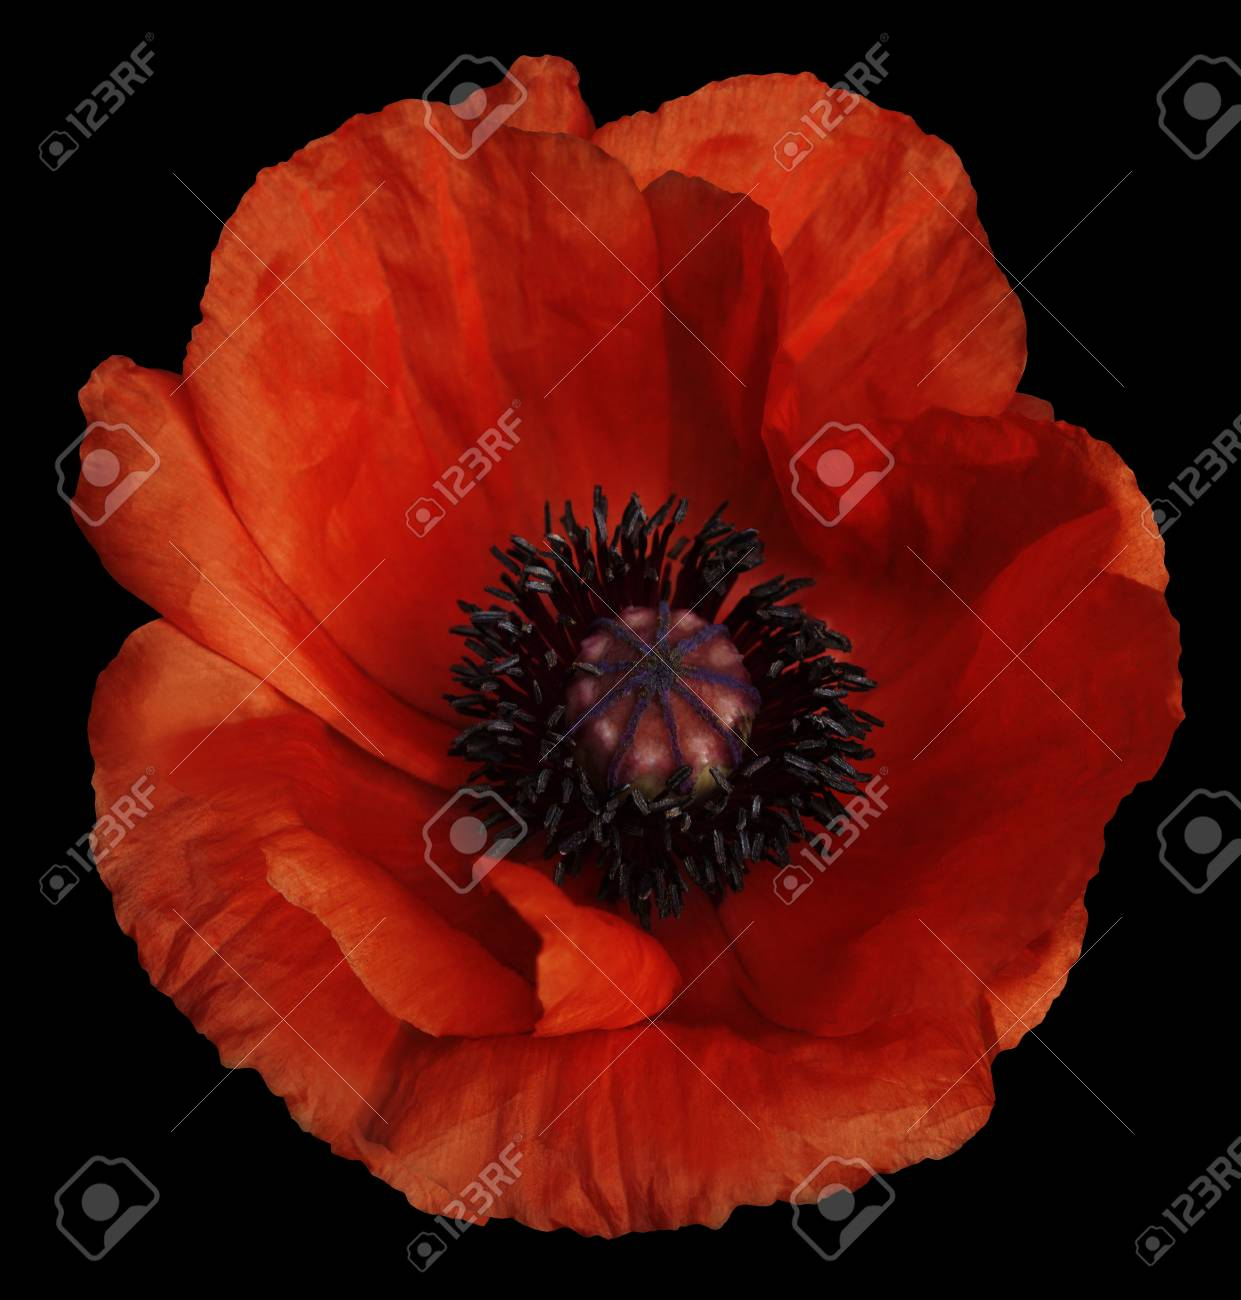 Red Poppy Flower On The Black Isolated Background With Clipping